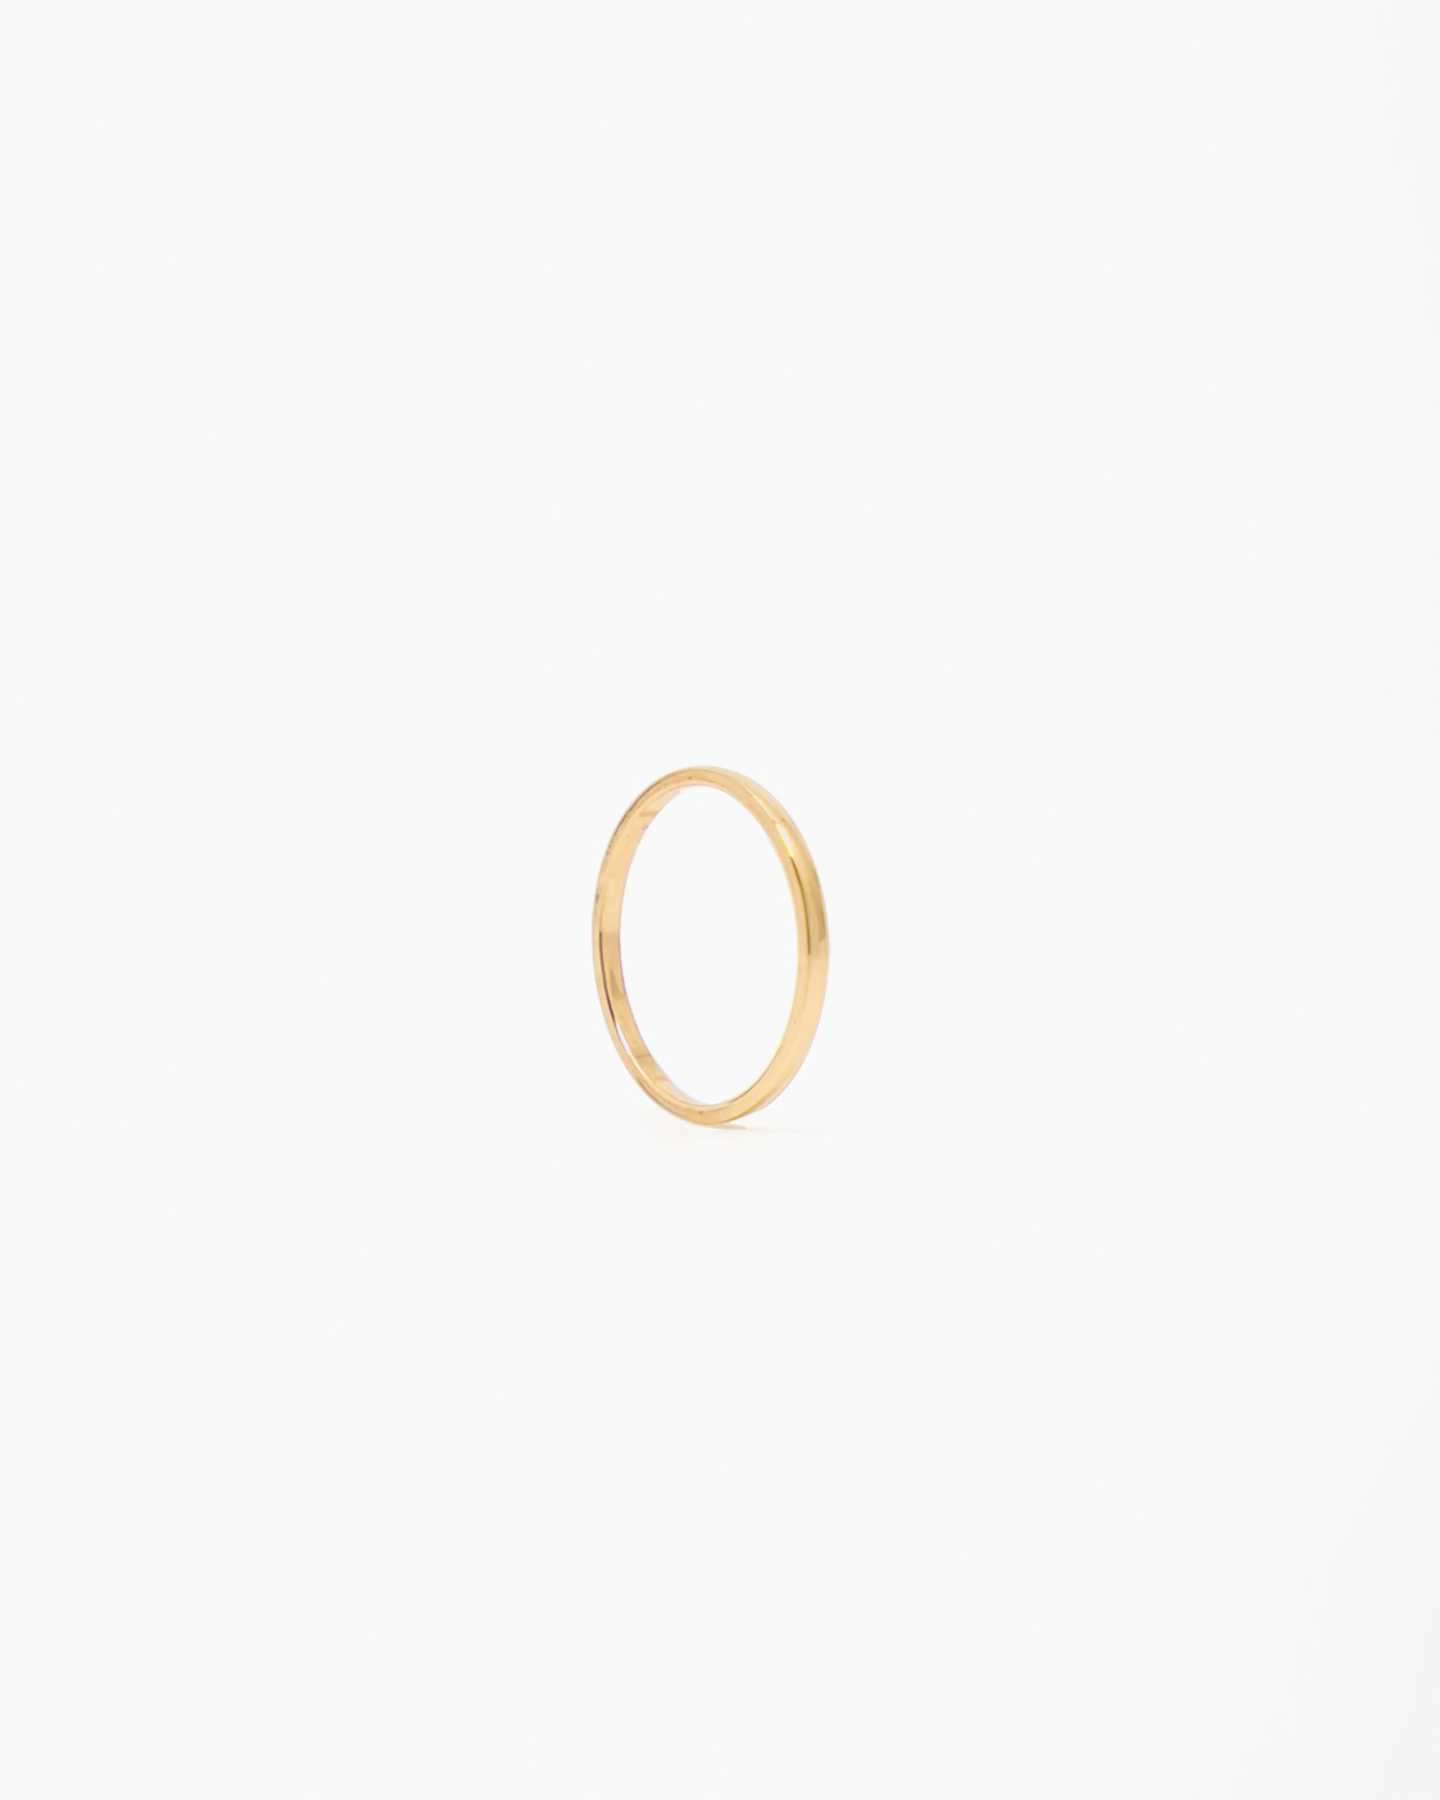 Pair With - 14k Gold Stacker Ring - Yellow Gold